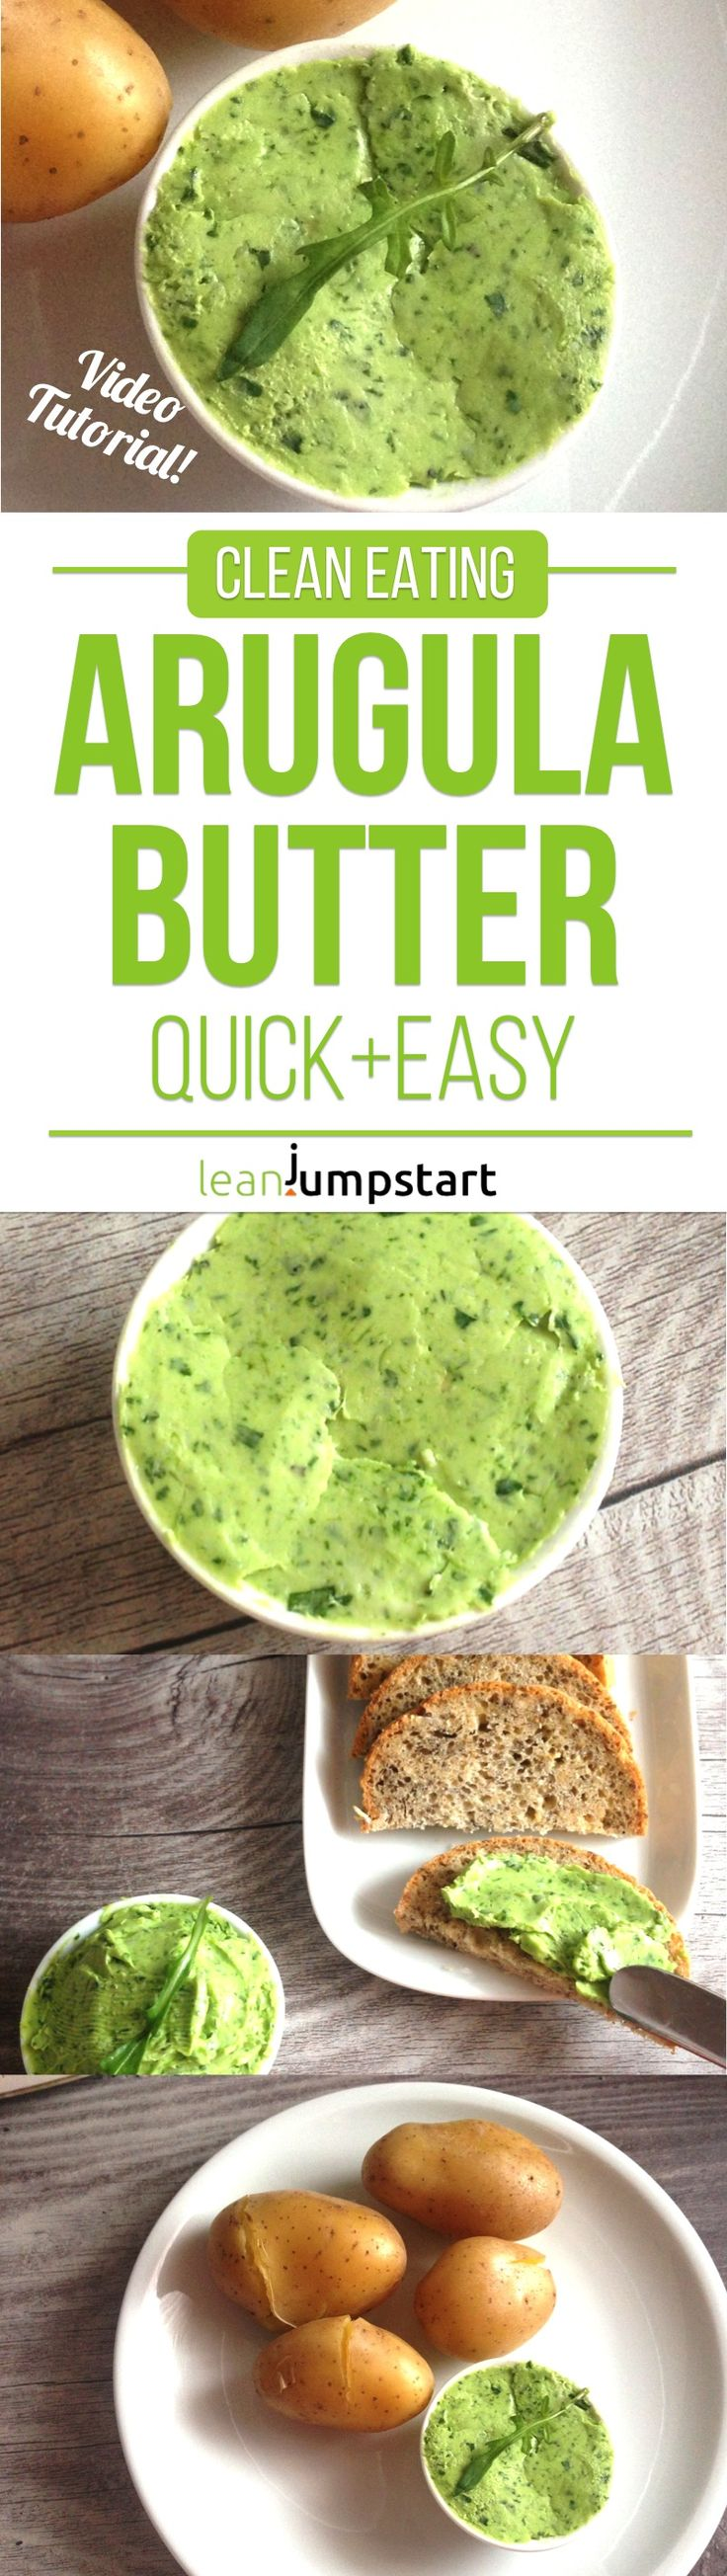 arugula butter: check out this yummy clean eating spread on video!